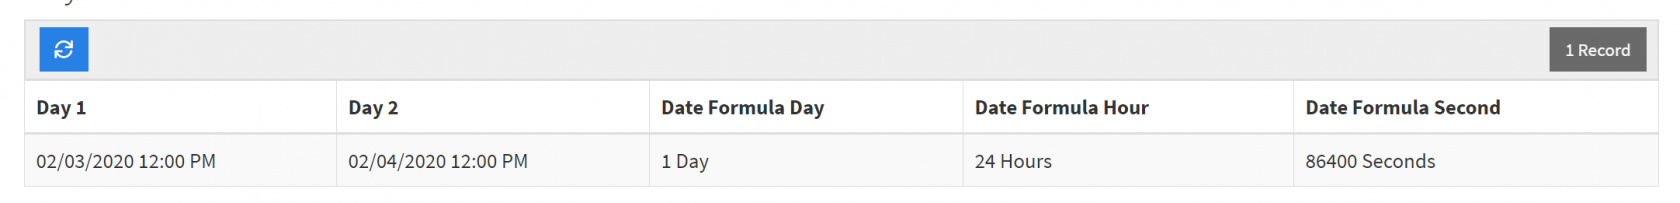 date-formula-day-hour-second.png